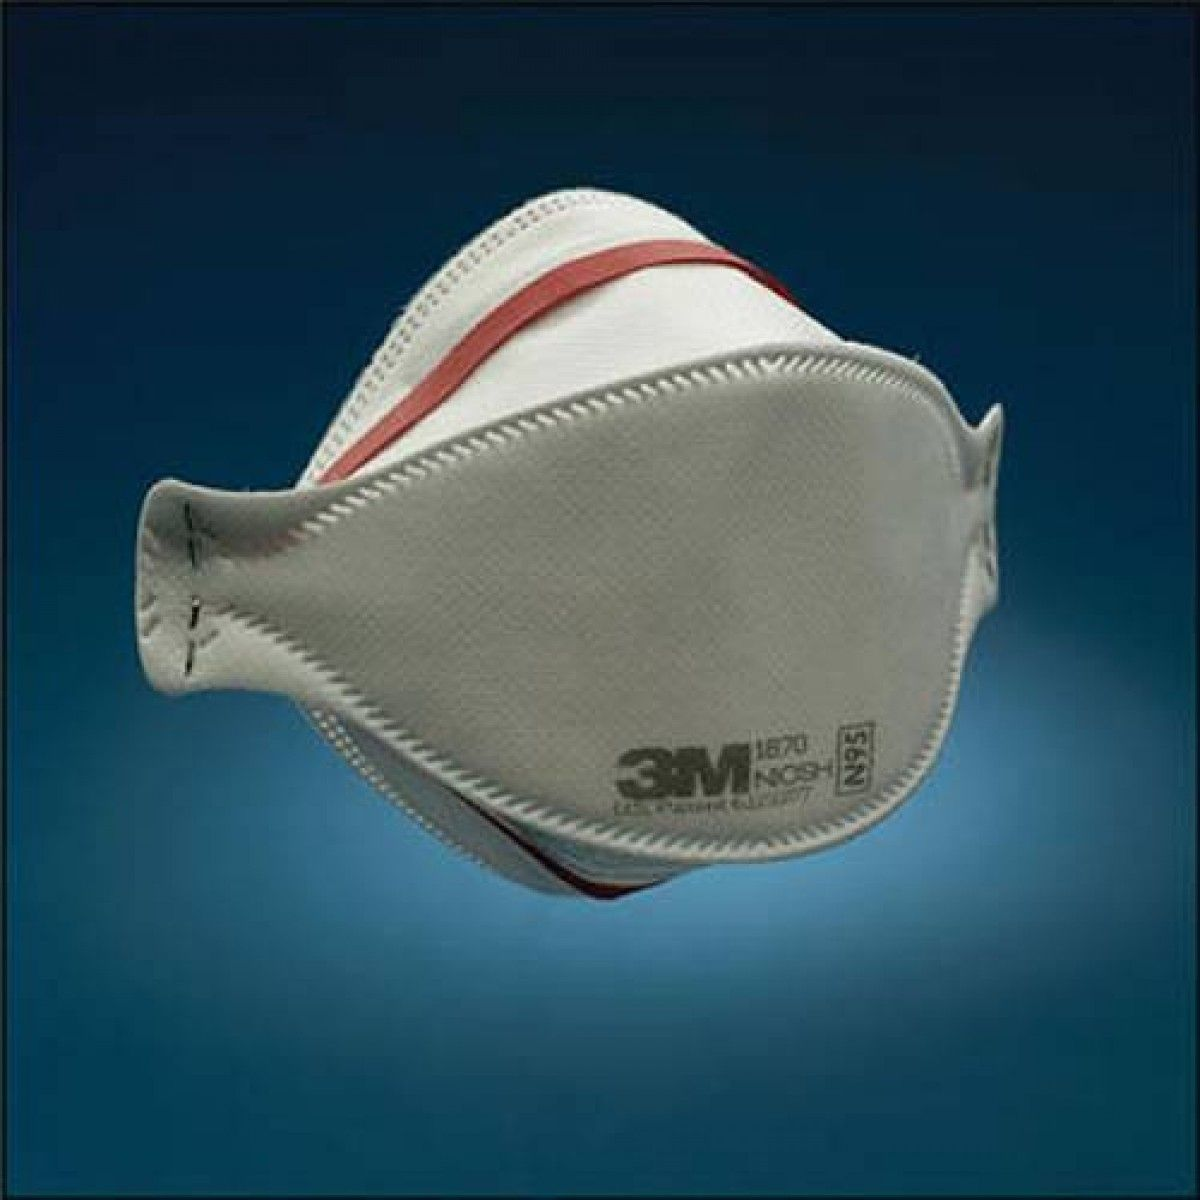 3m 1870 n95 surgical mask